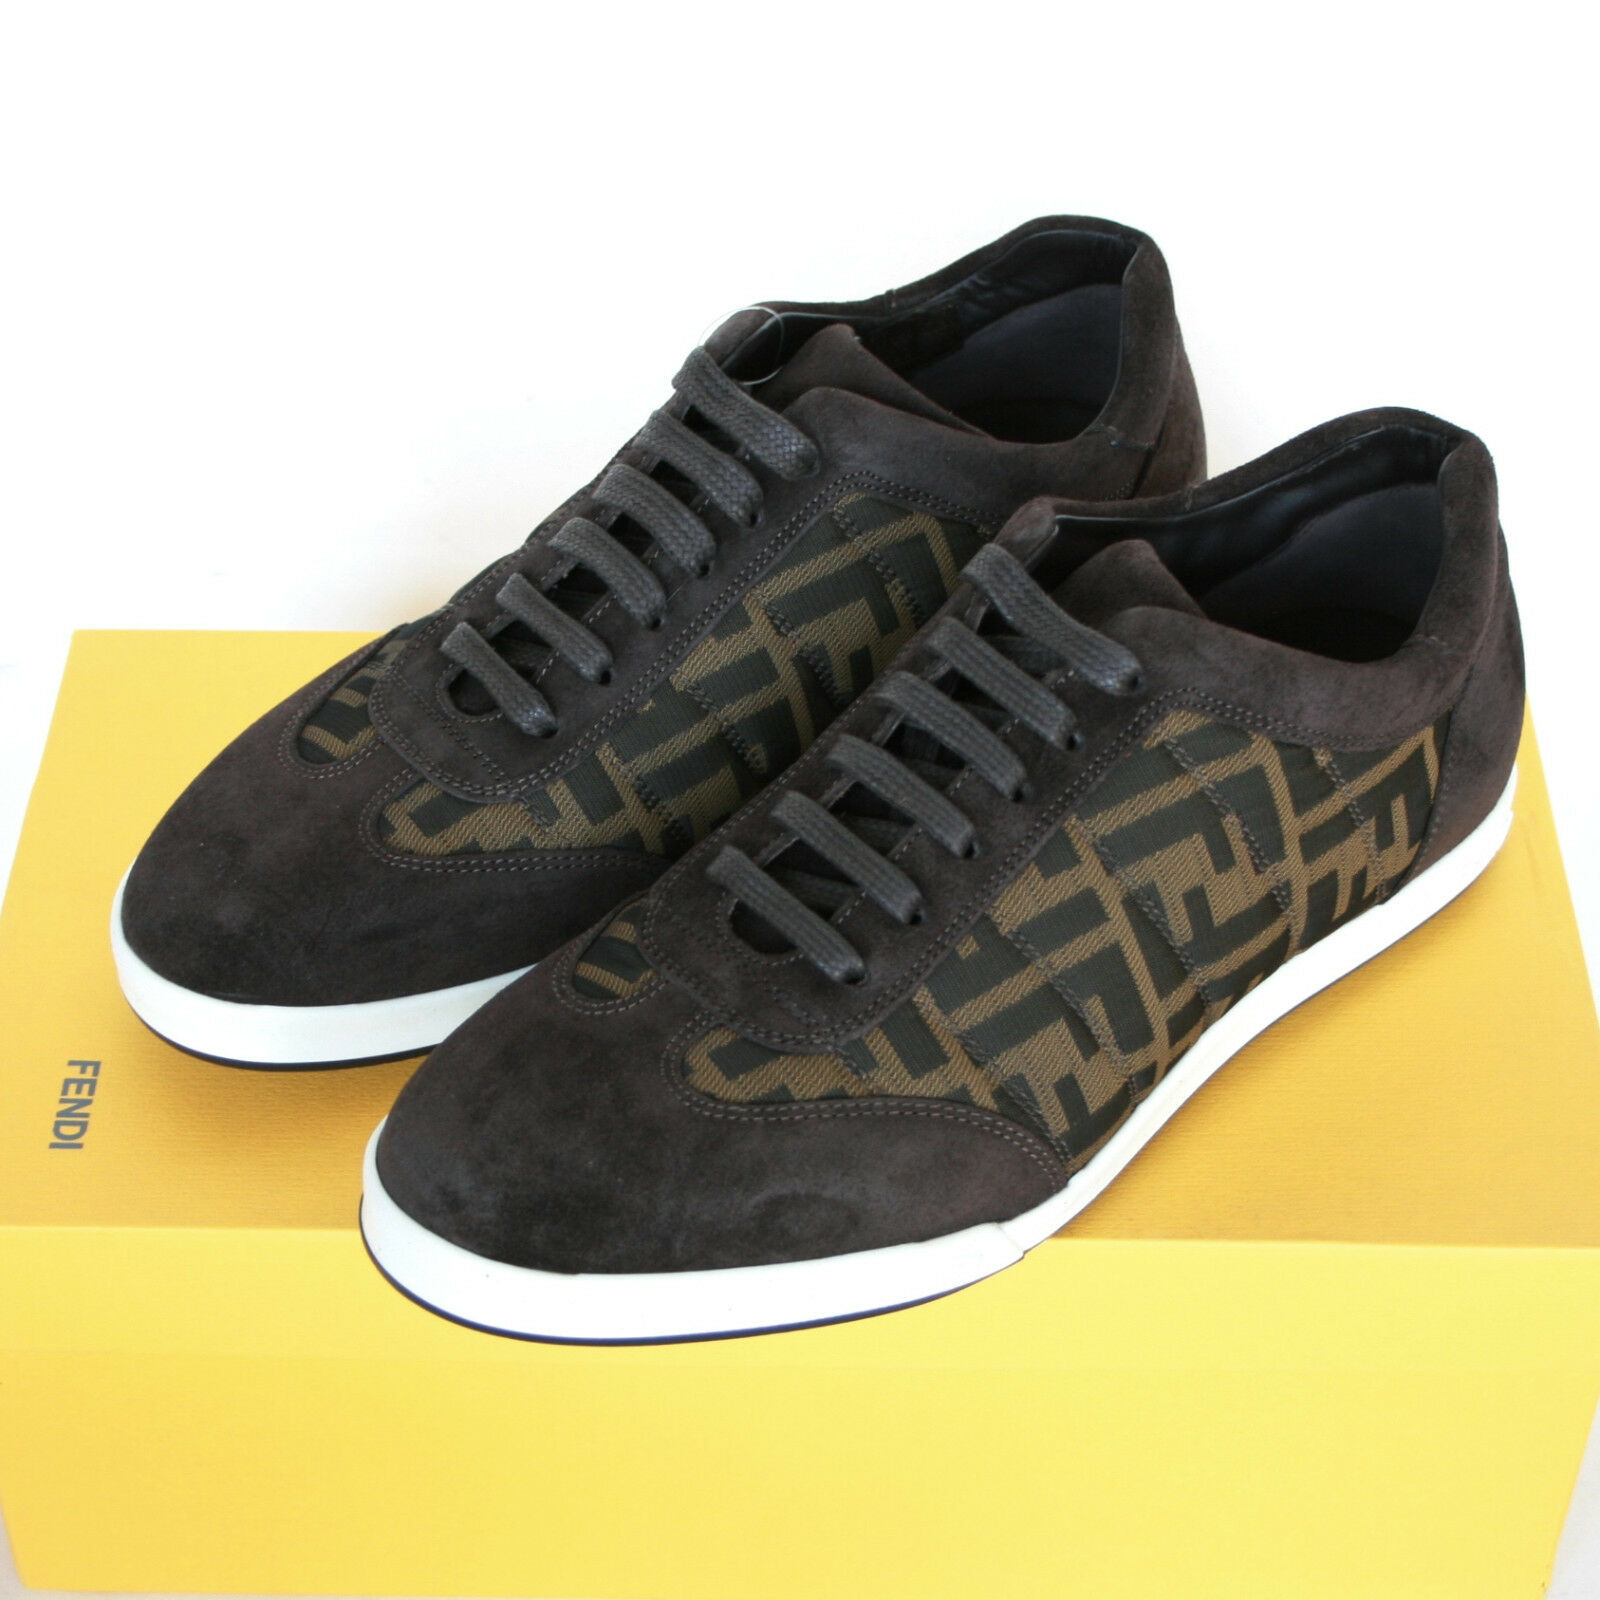 FENDI zucca FF monogram logo sneakers suede leather trainers shoes 7-UK/8-US NEW